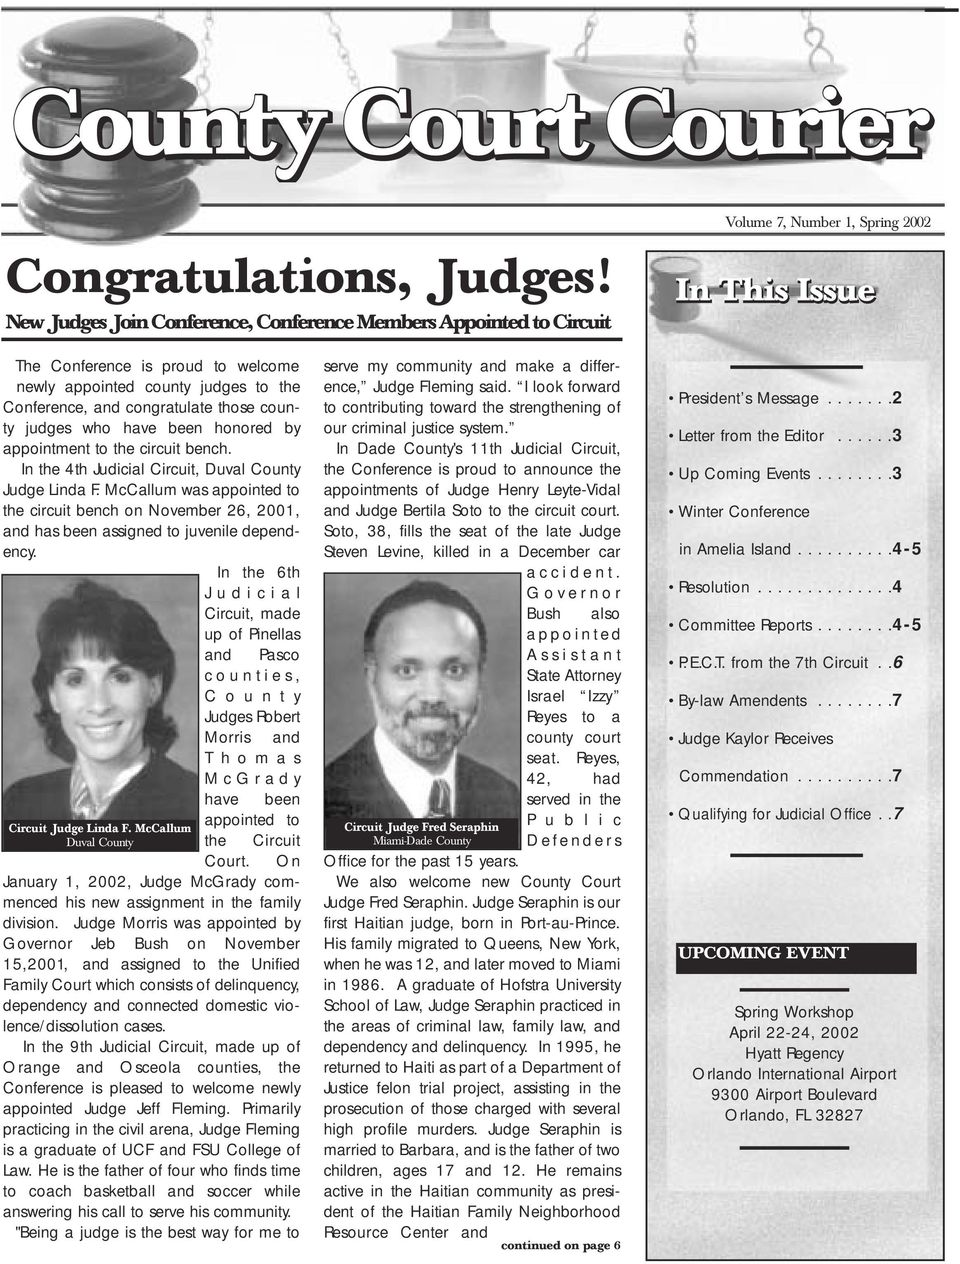 congratulate those county judges who have been honored by appointment to the circuit bench. In the 4th Judicial Circuit, Duval County Judge Linda F.